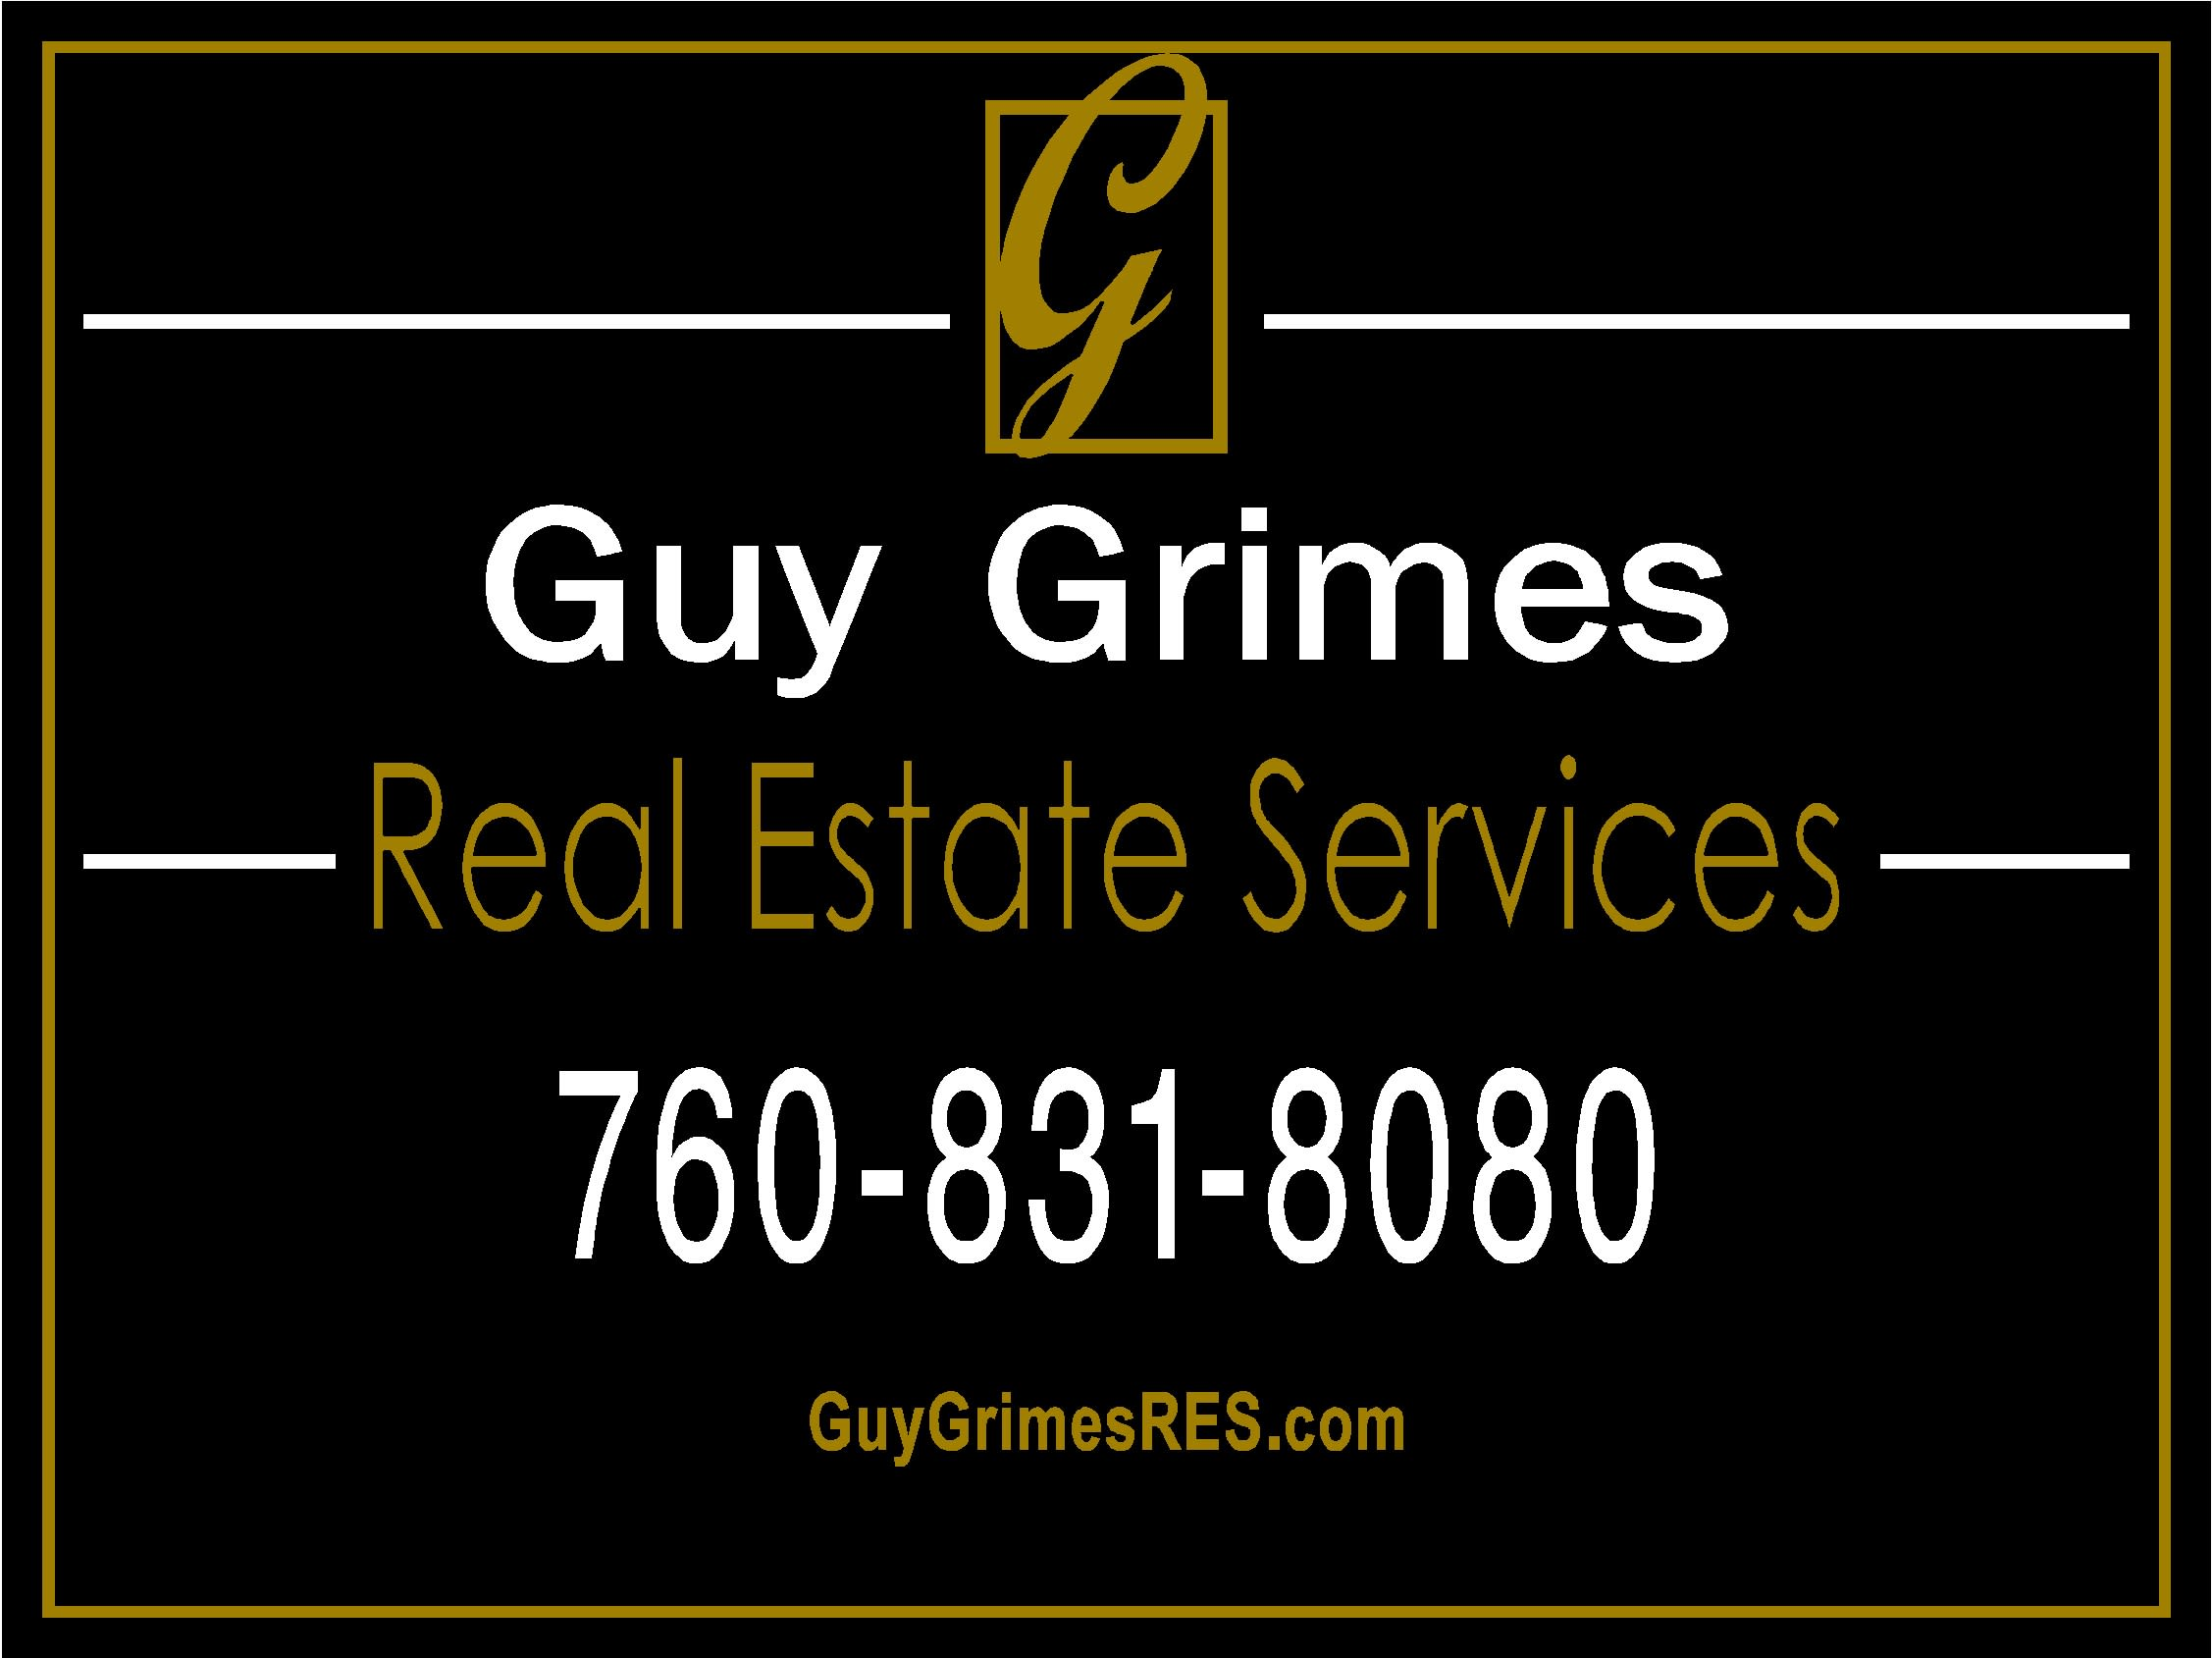 Guy Grimes Real Estate Services